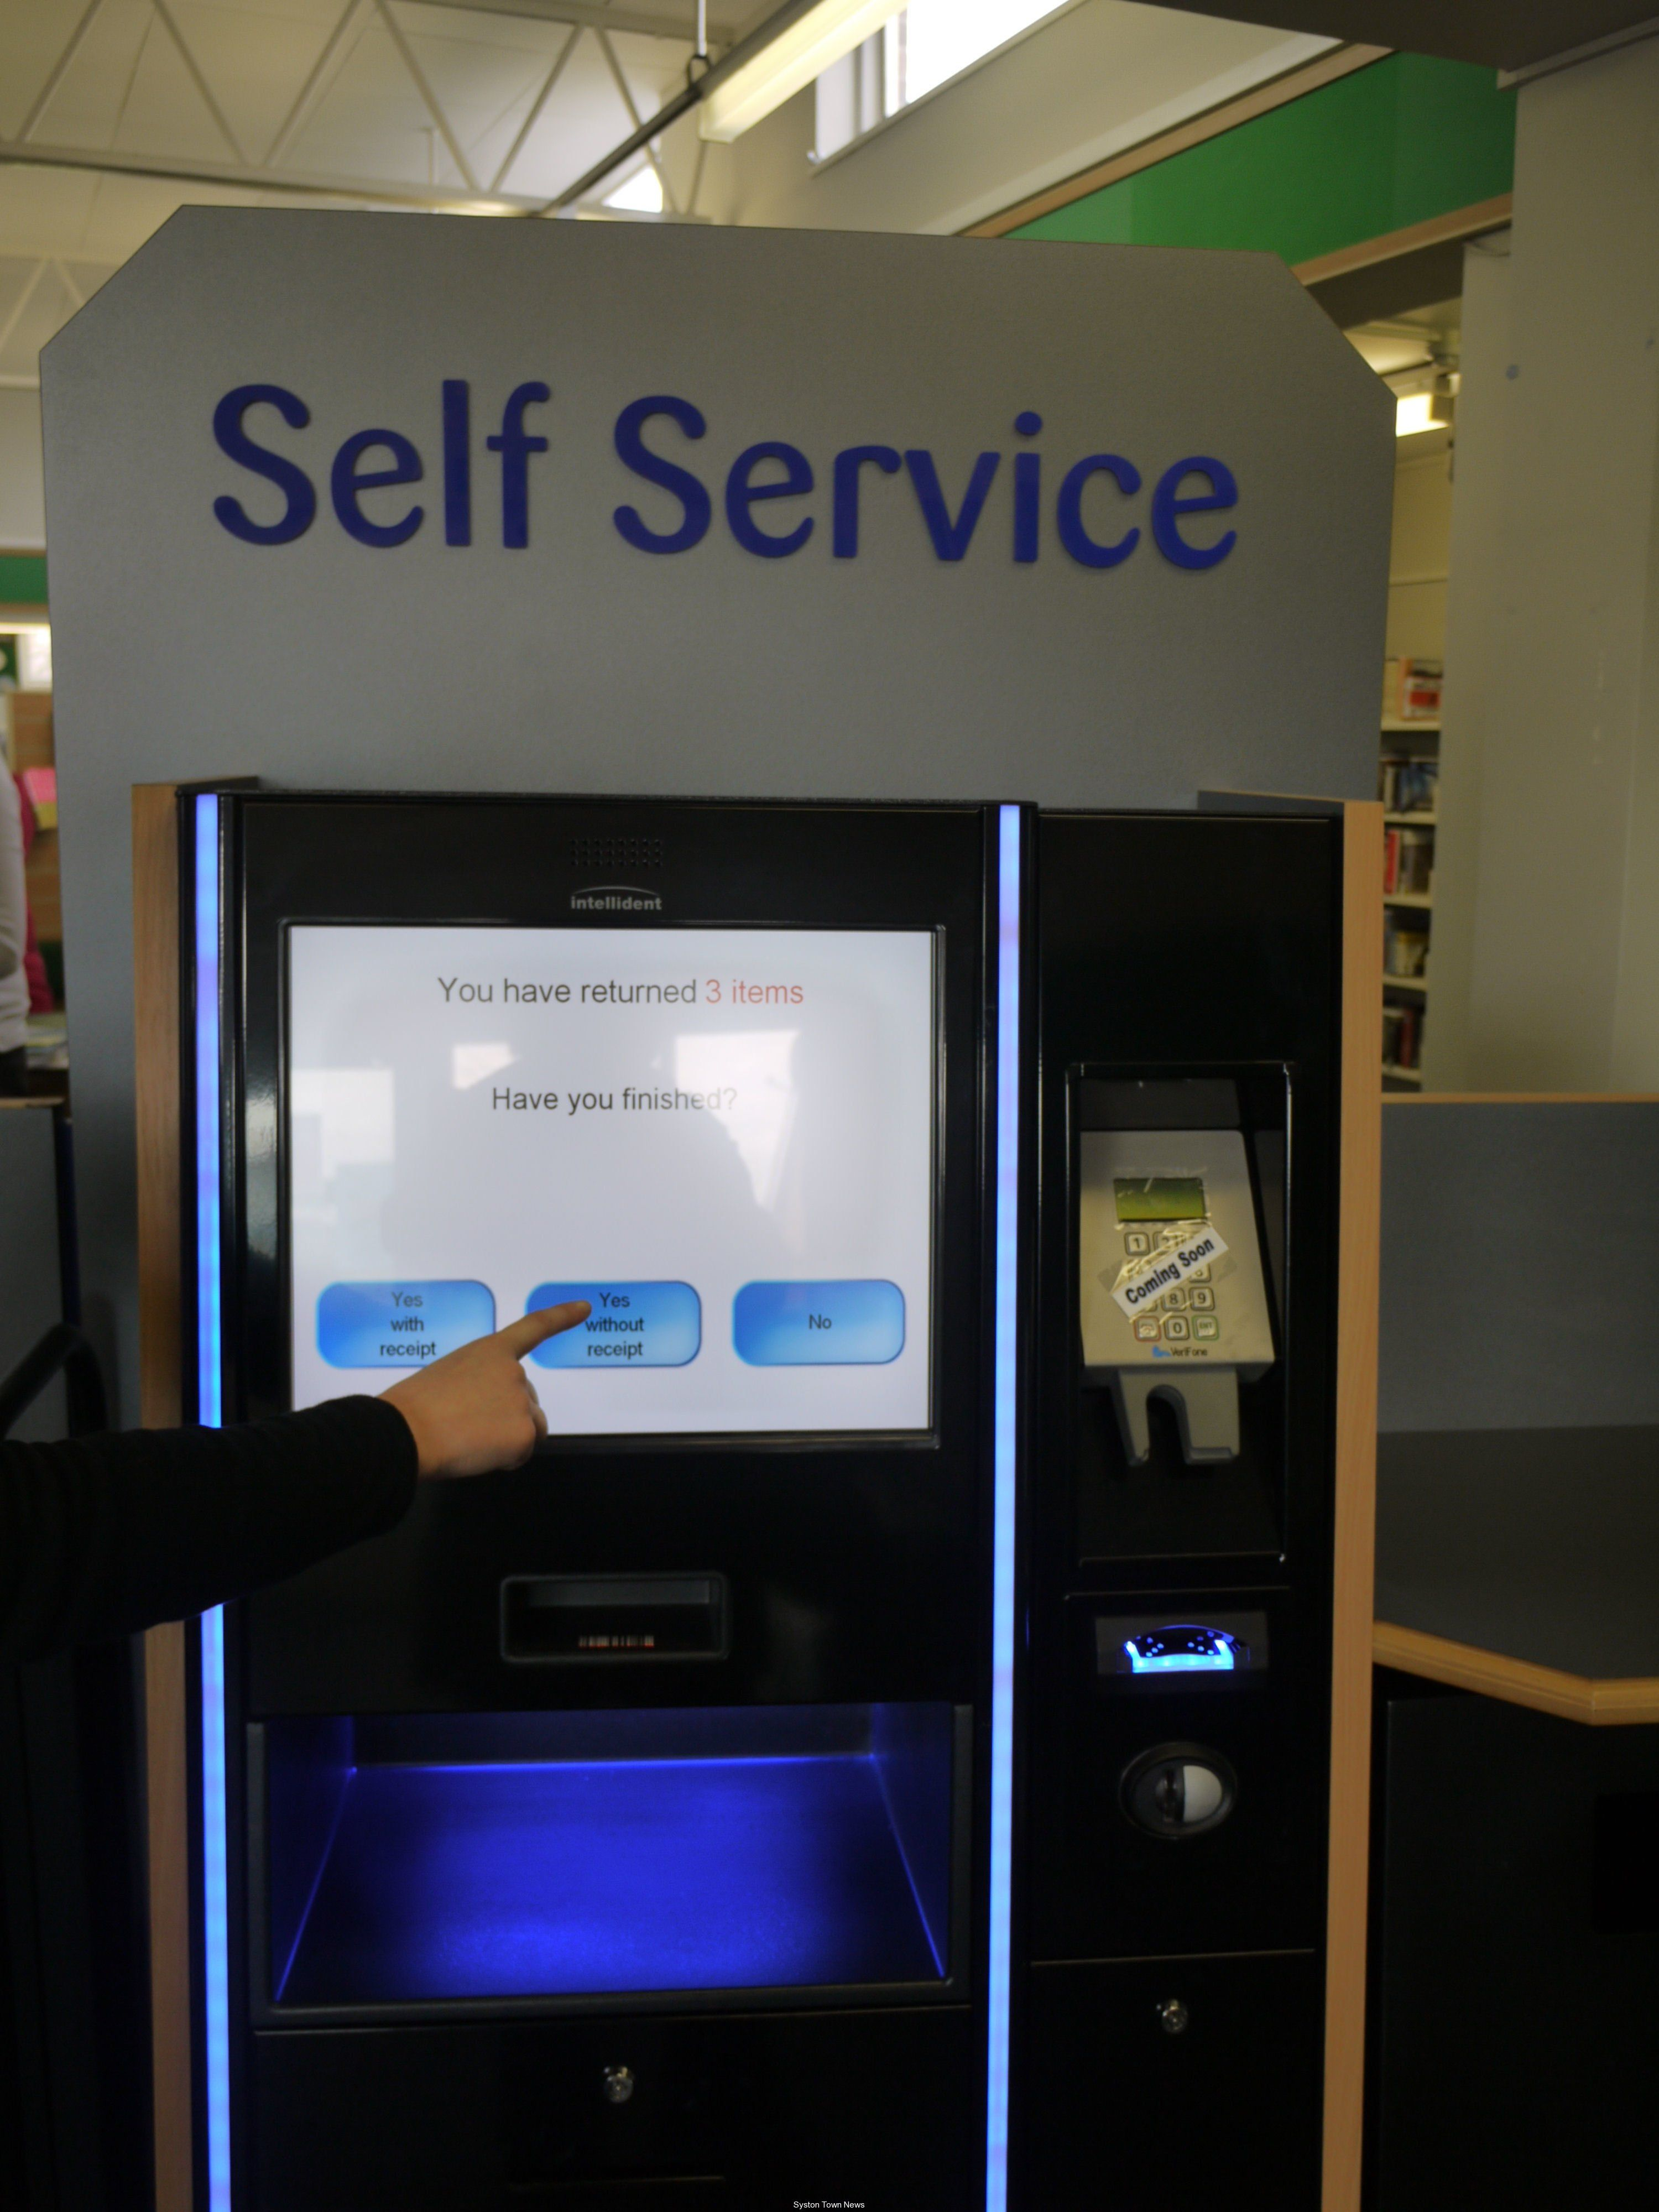 Selfservice kiosk Library Enable people to borrow